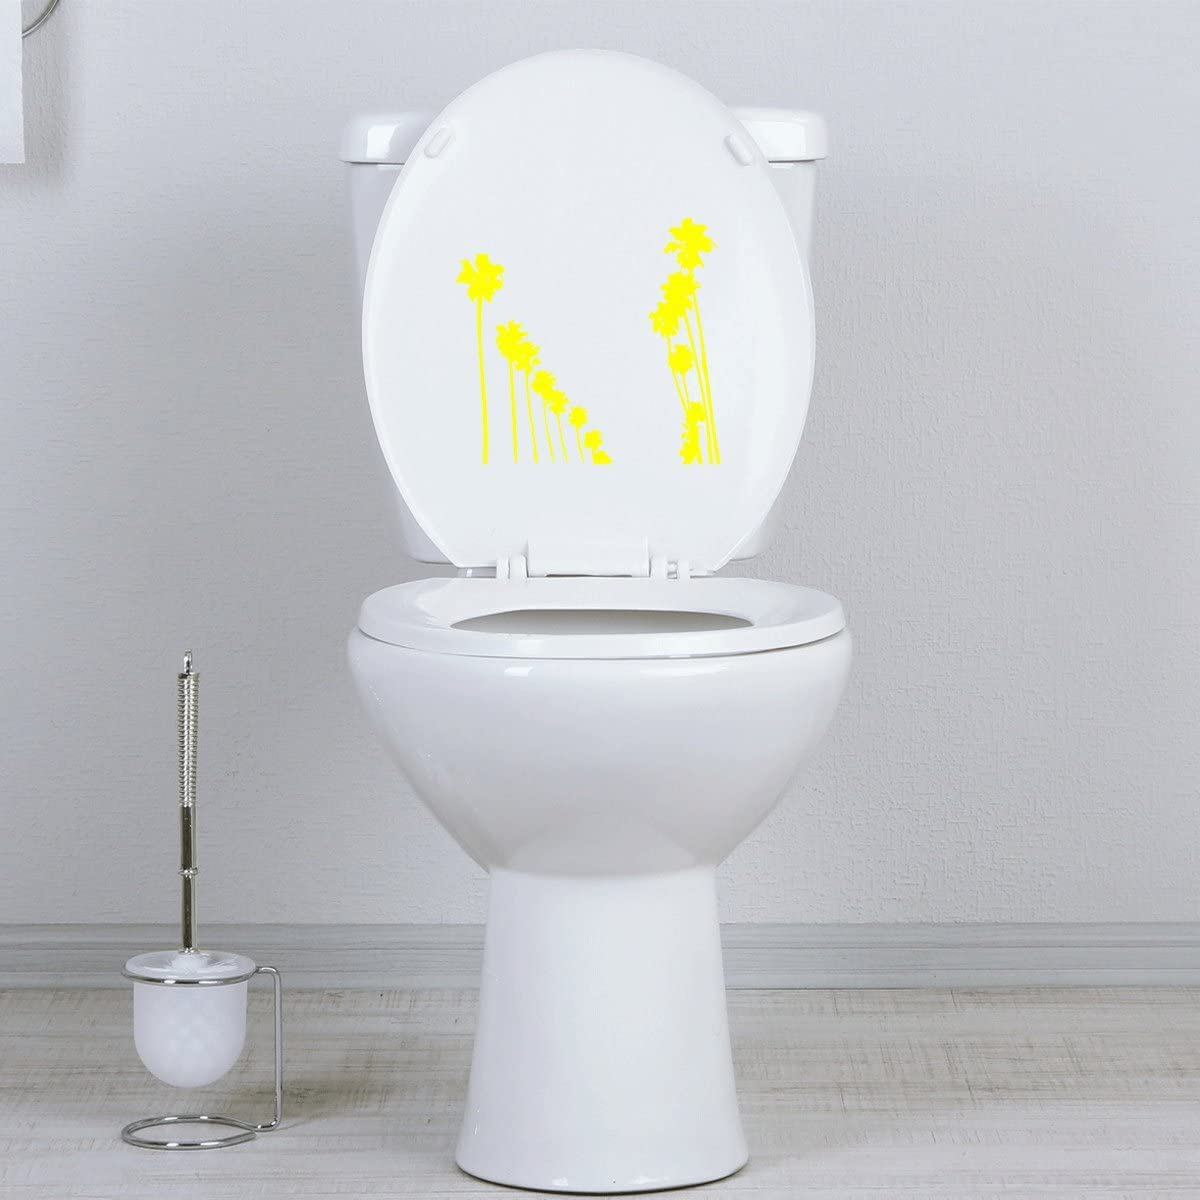 Black Bath Seat StickAny Bathroom Decal Series Palm Tree Rows Sticker for Toilet Bowl